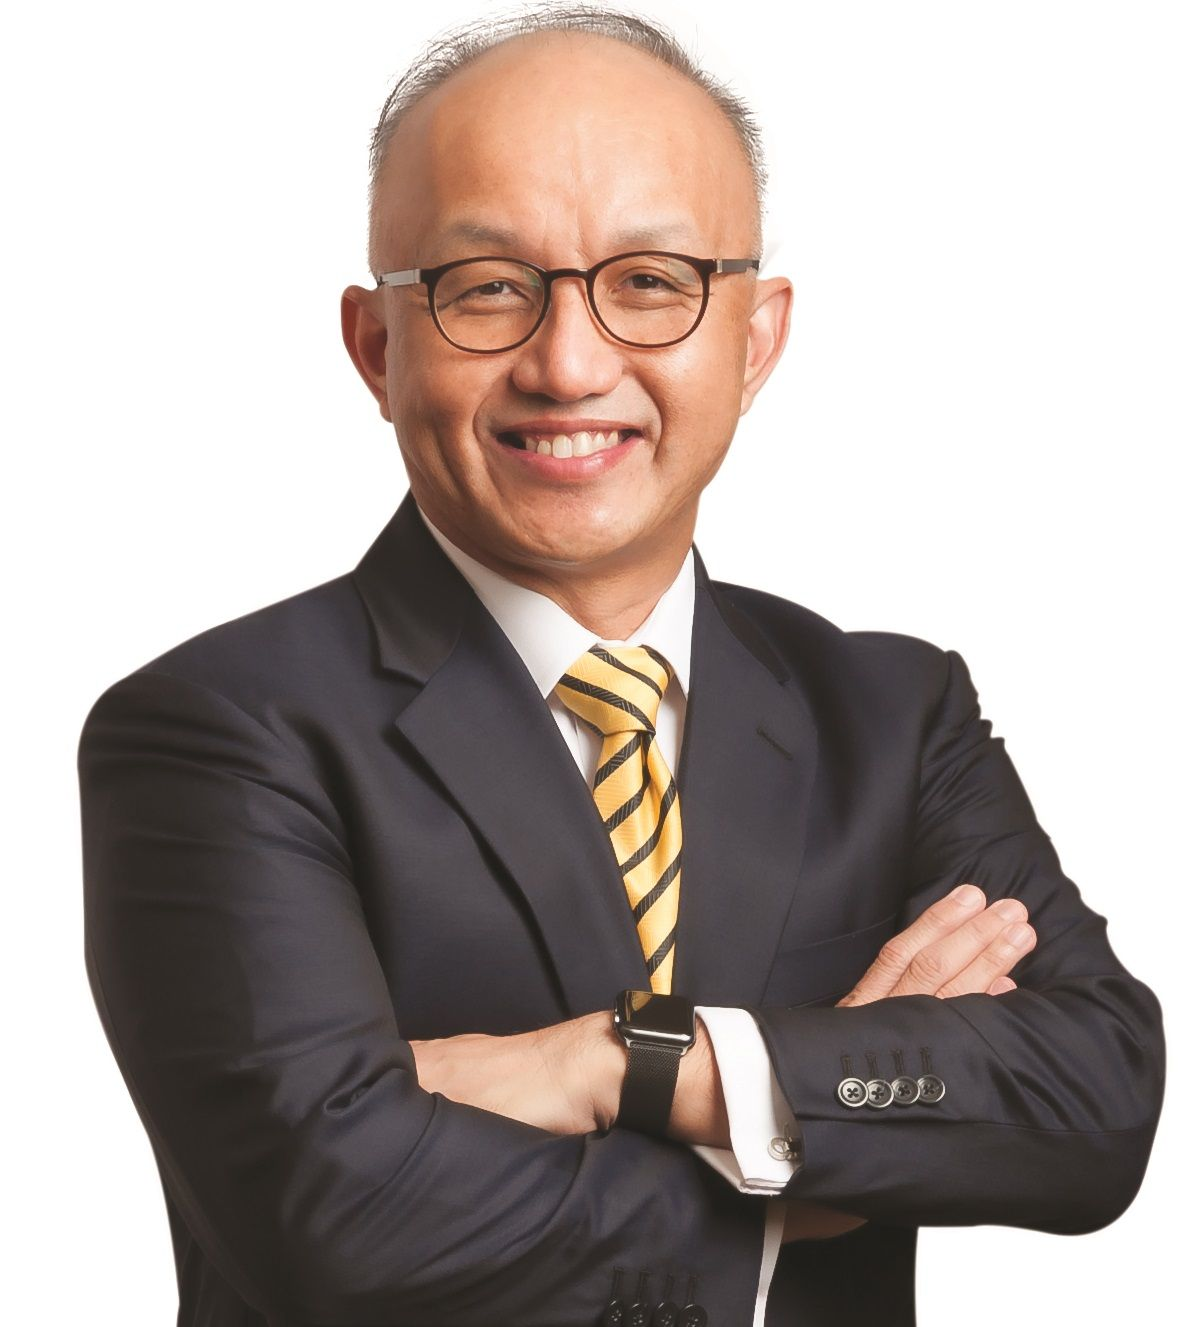 Maybank's group chief executive officer for community financial services Datuk John Chong said the collaboration with CGC was to support SMEs particularly during this critical period as business activities are gradually picking up.